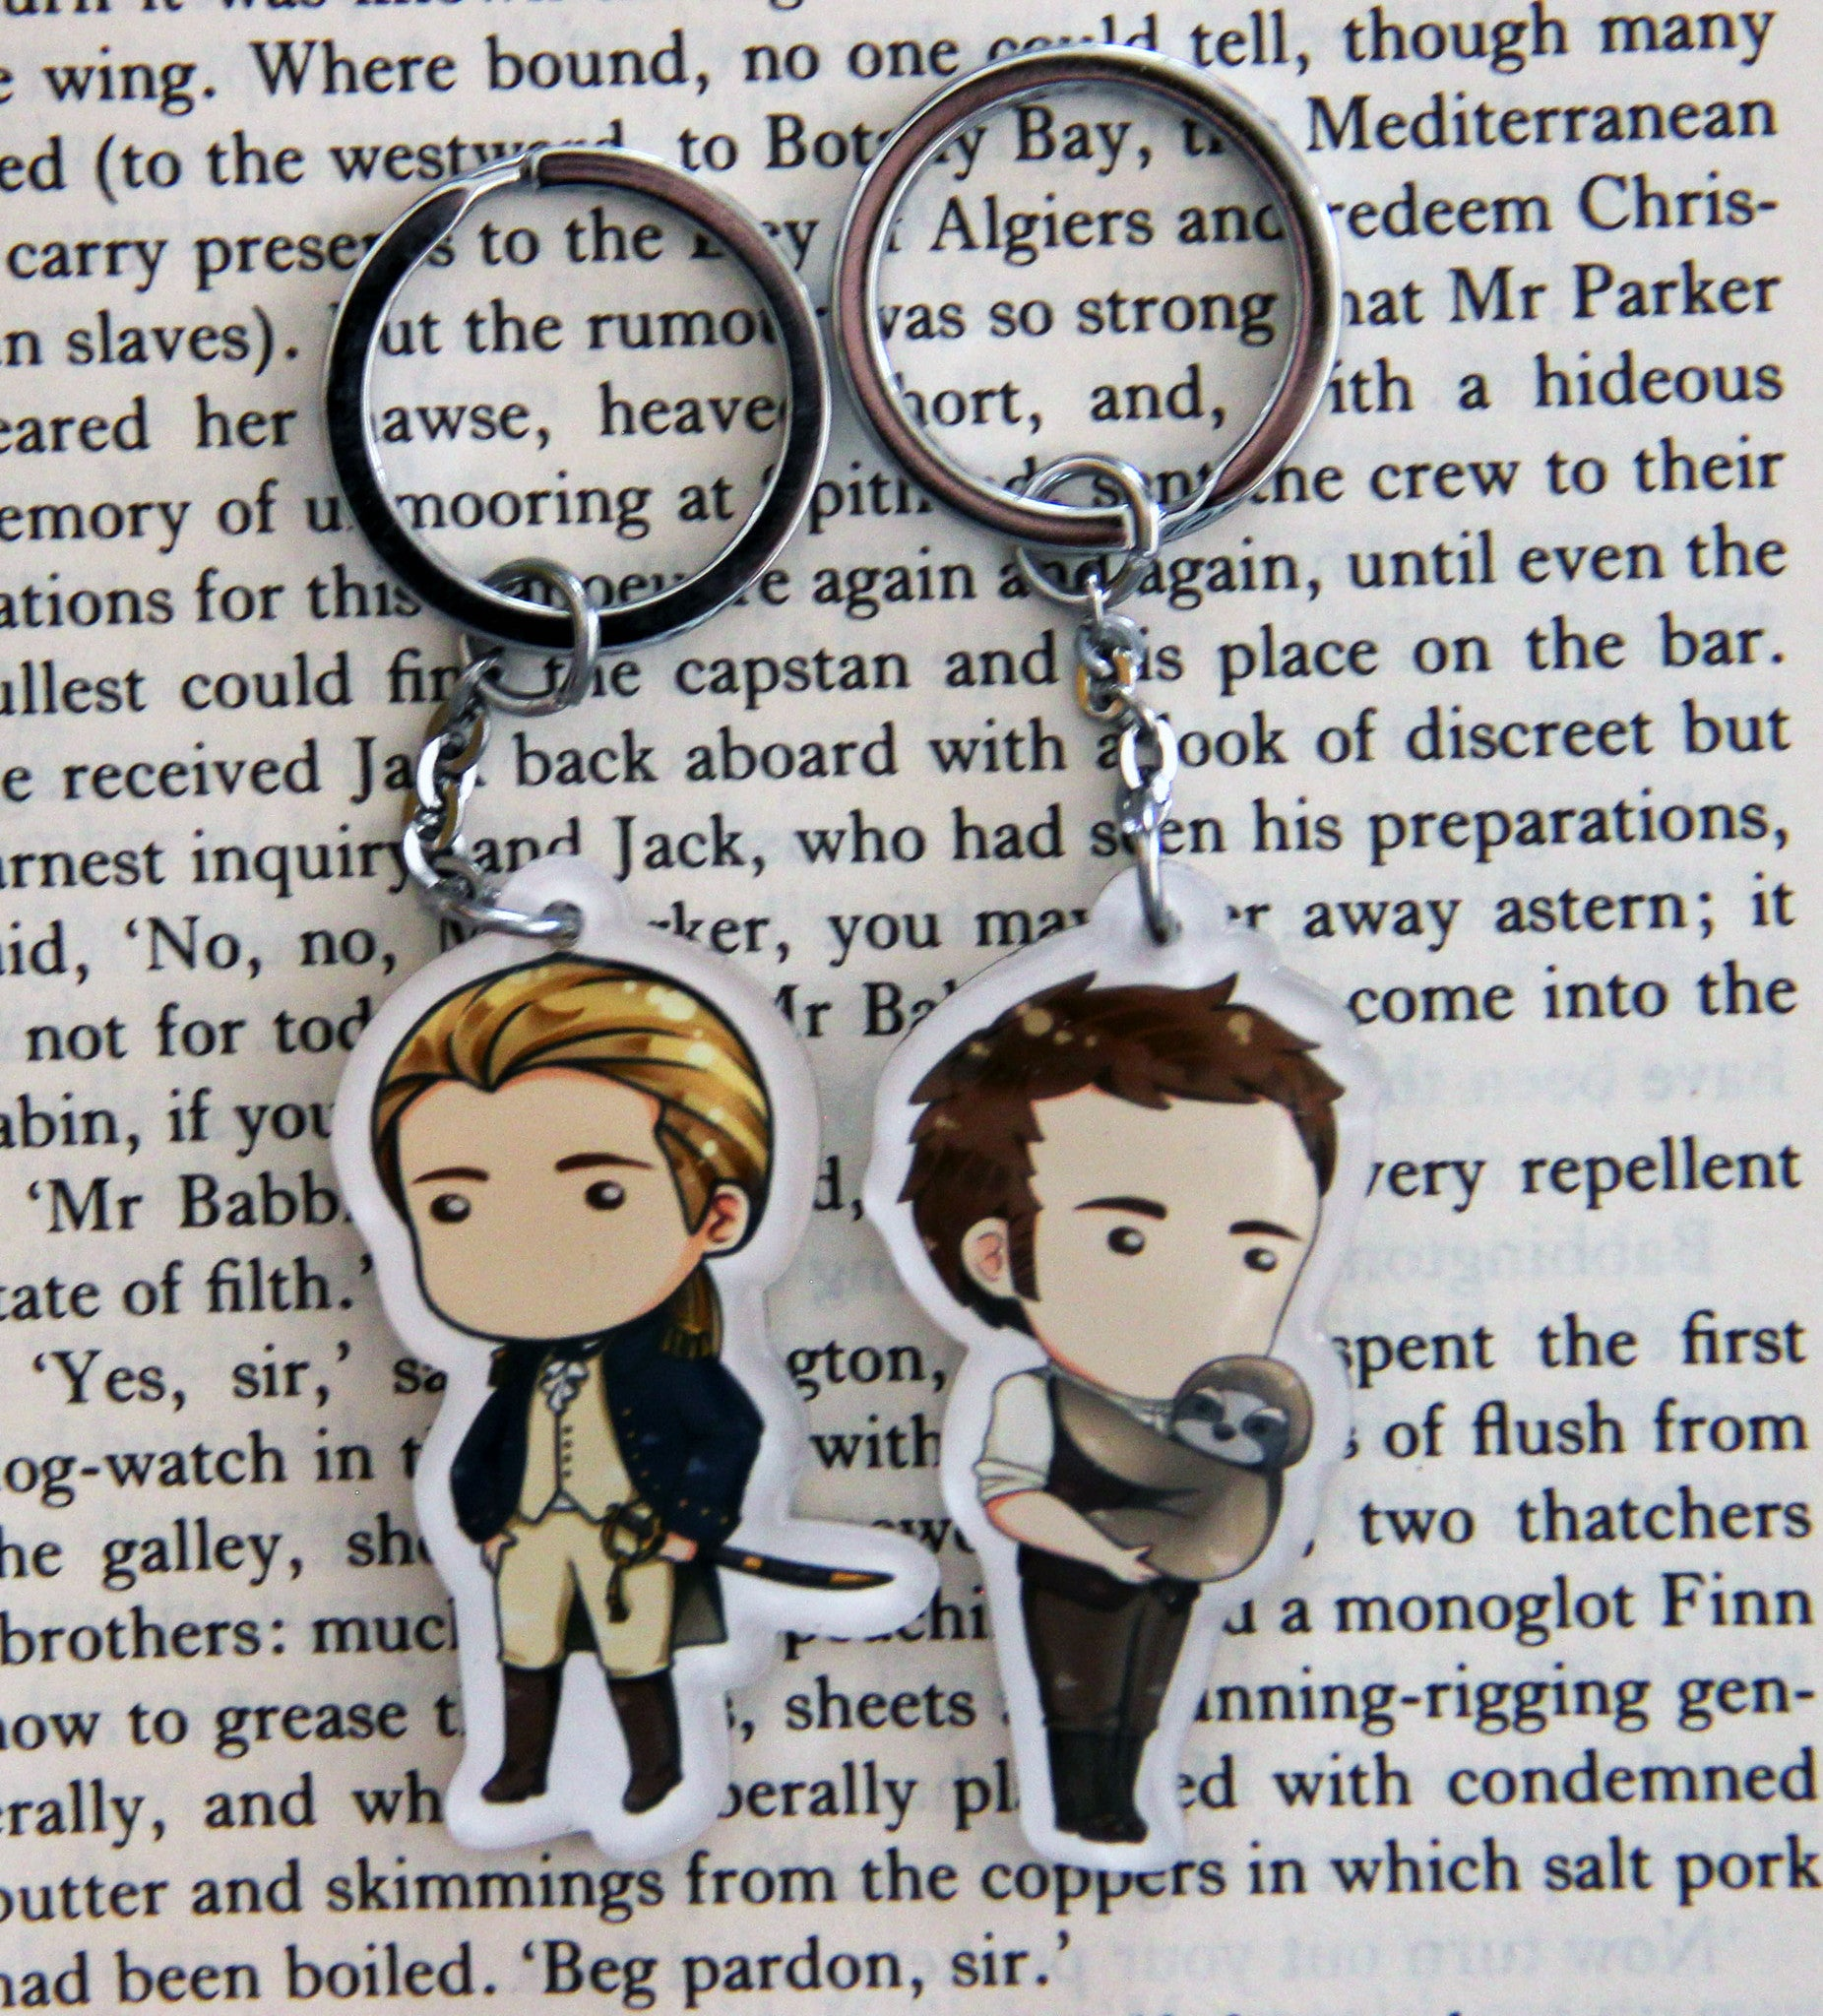 Jack and Stephen Acrylic Figure Keychain Set - Consulting Fangeeks - 1